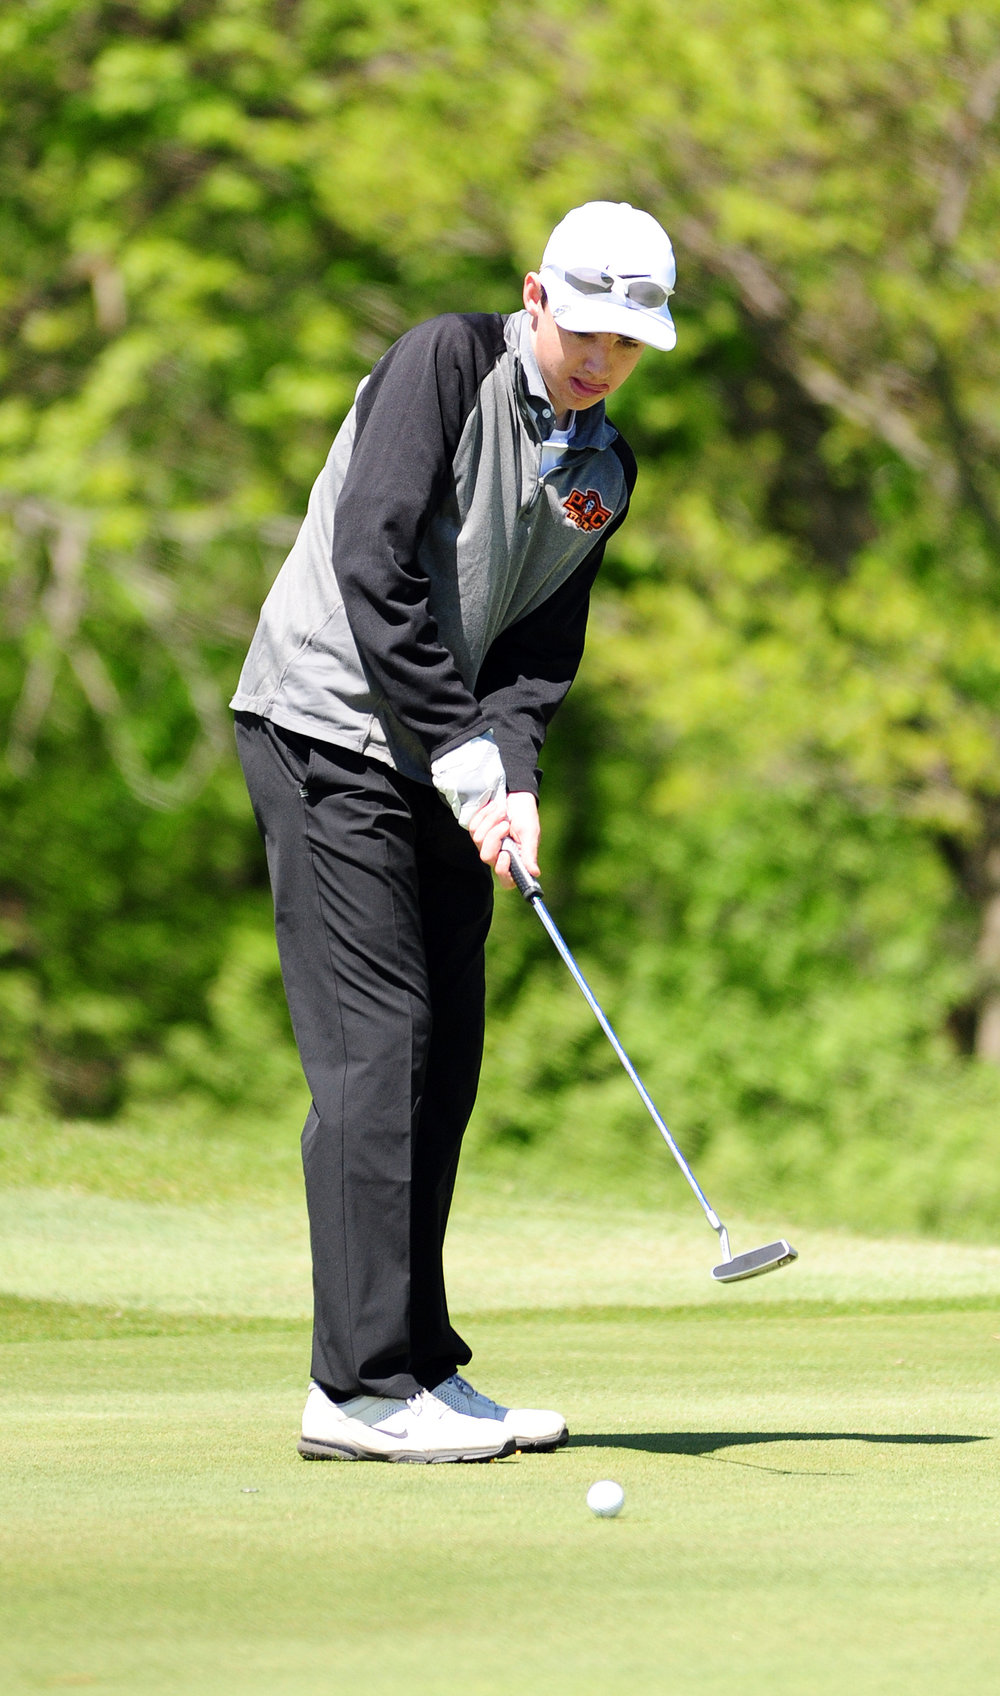 NICK INGRAM/Citizen photo Platte County freshman Logan Hessemyer watches a putt during his round in the Class 3 District 8 tournament Tuesday, May 2 on the Posse Course at Paradise Pointe Golf Complex in Smithville, Mo.